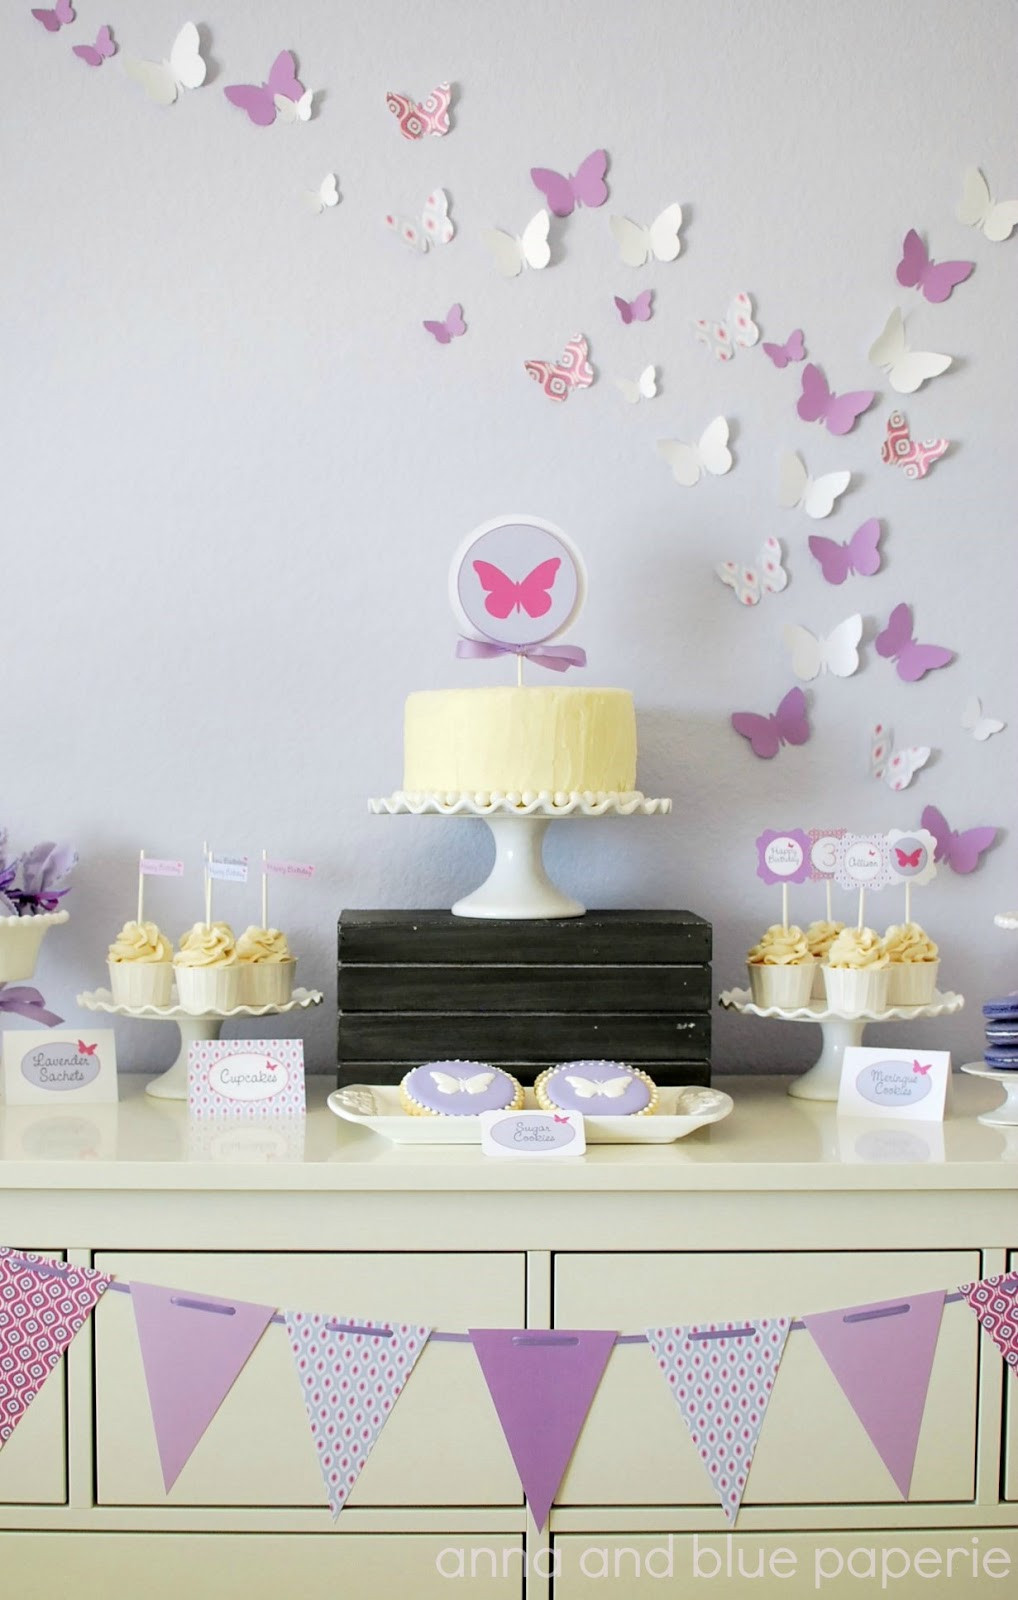 Best ideas about Butterfly Birthday Decor . Save or Pin anna and blue paperie New to the Shop Butterfly Party Now.